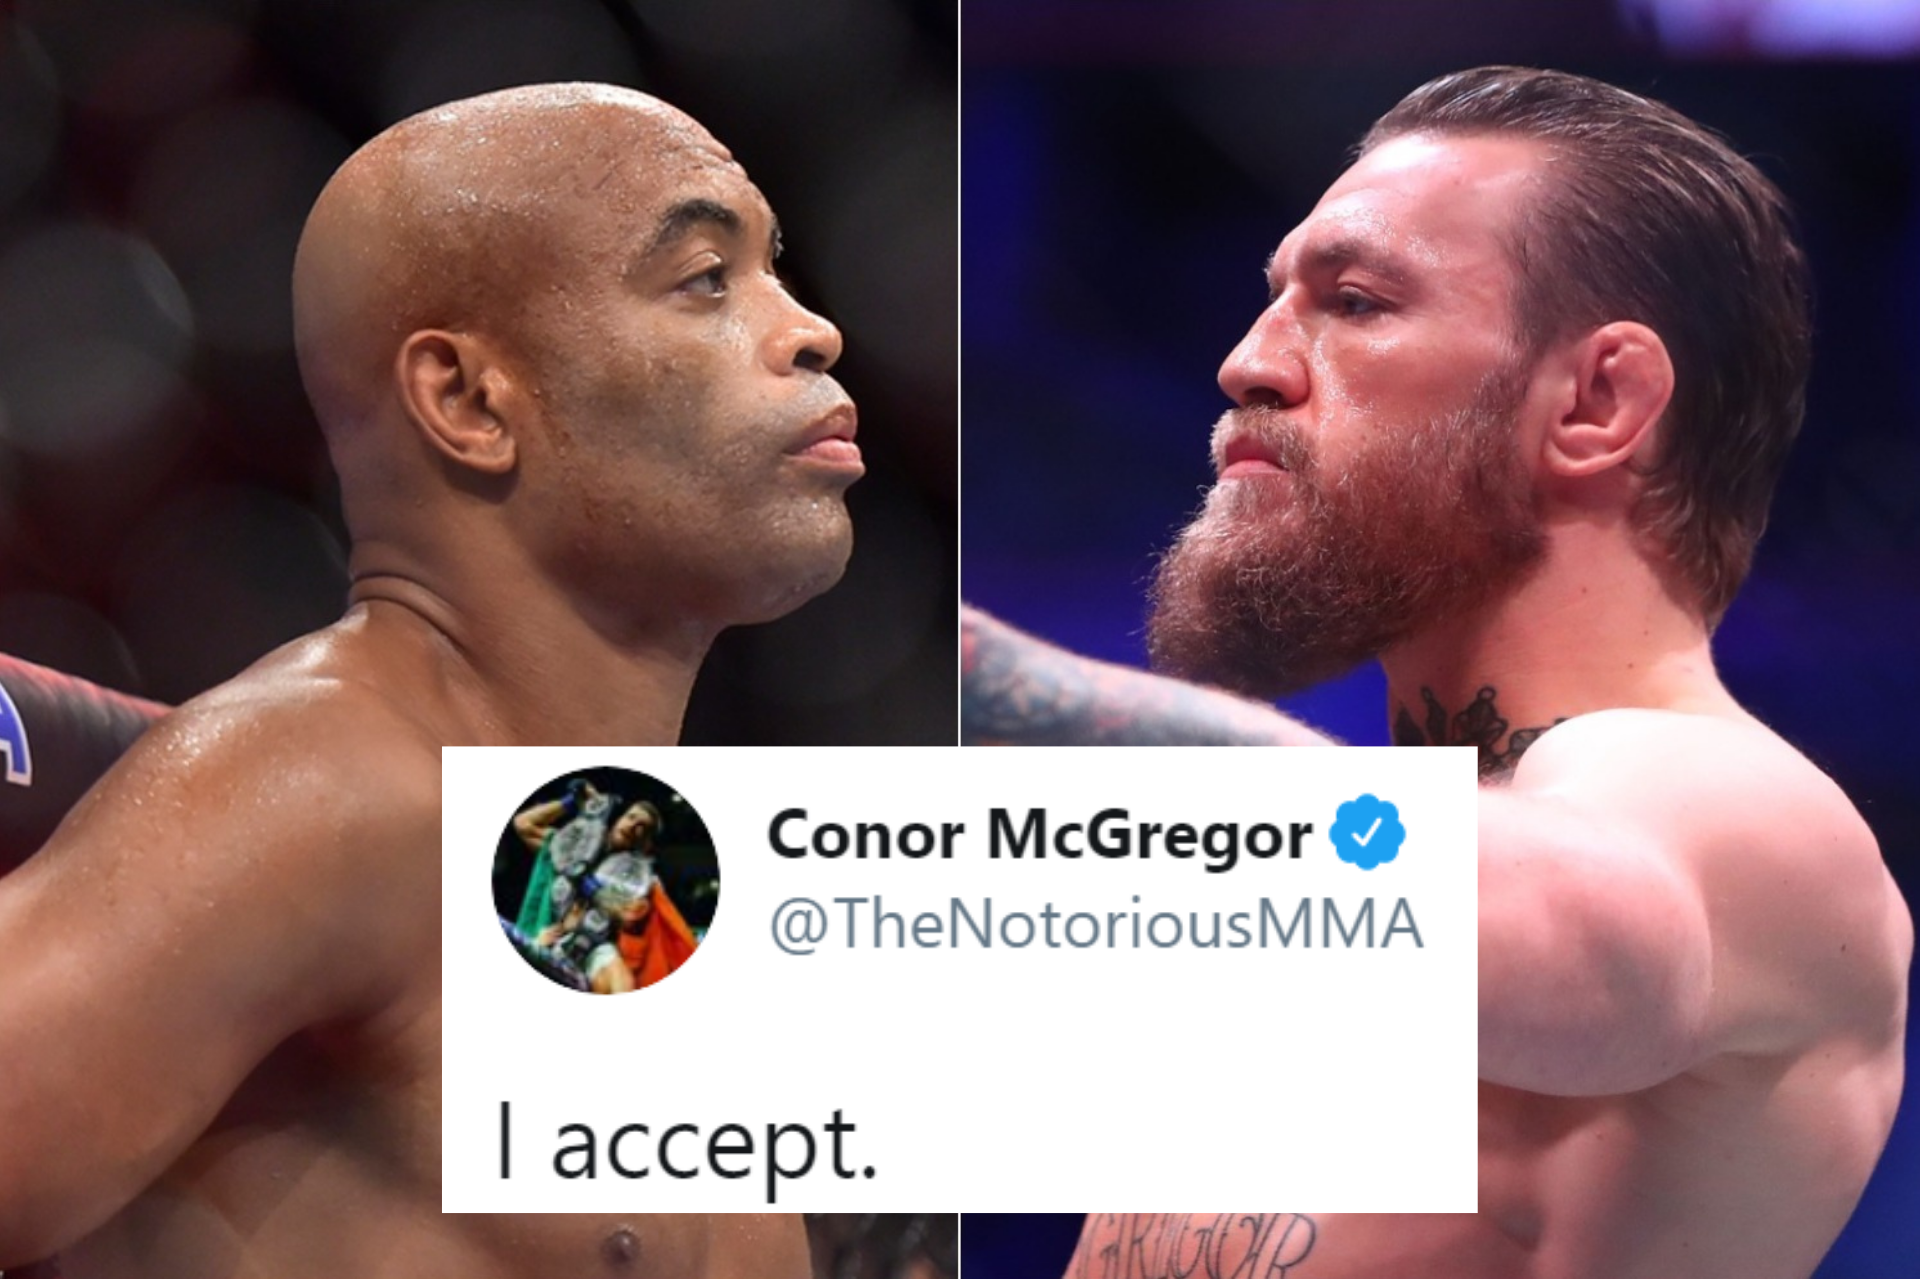 Conor McGregor 'accepts' catchweight superfight against Anderson Silva - Conor McGregor